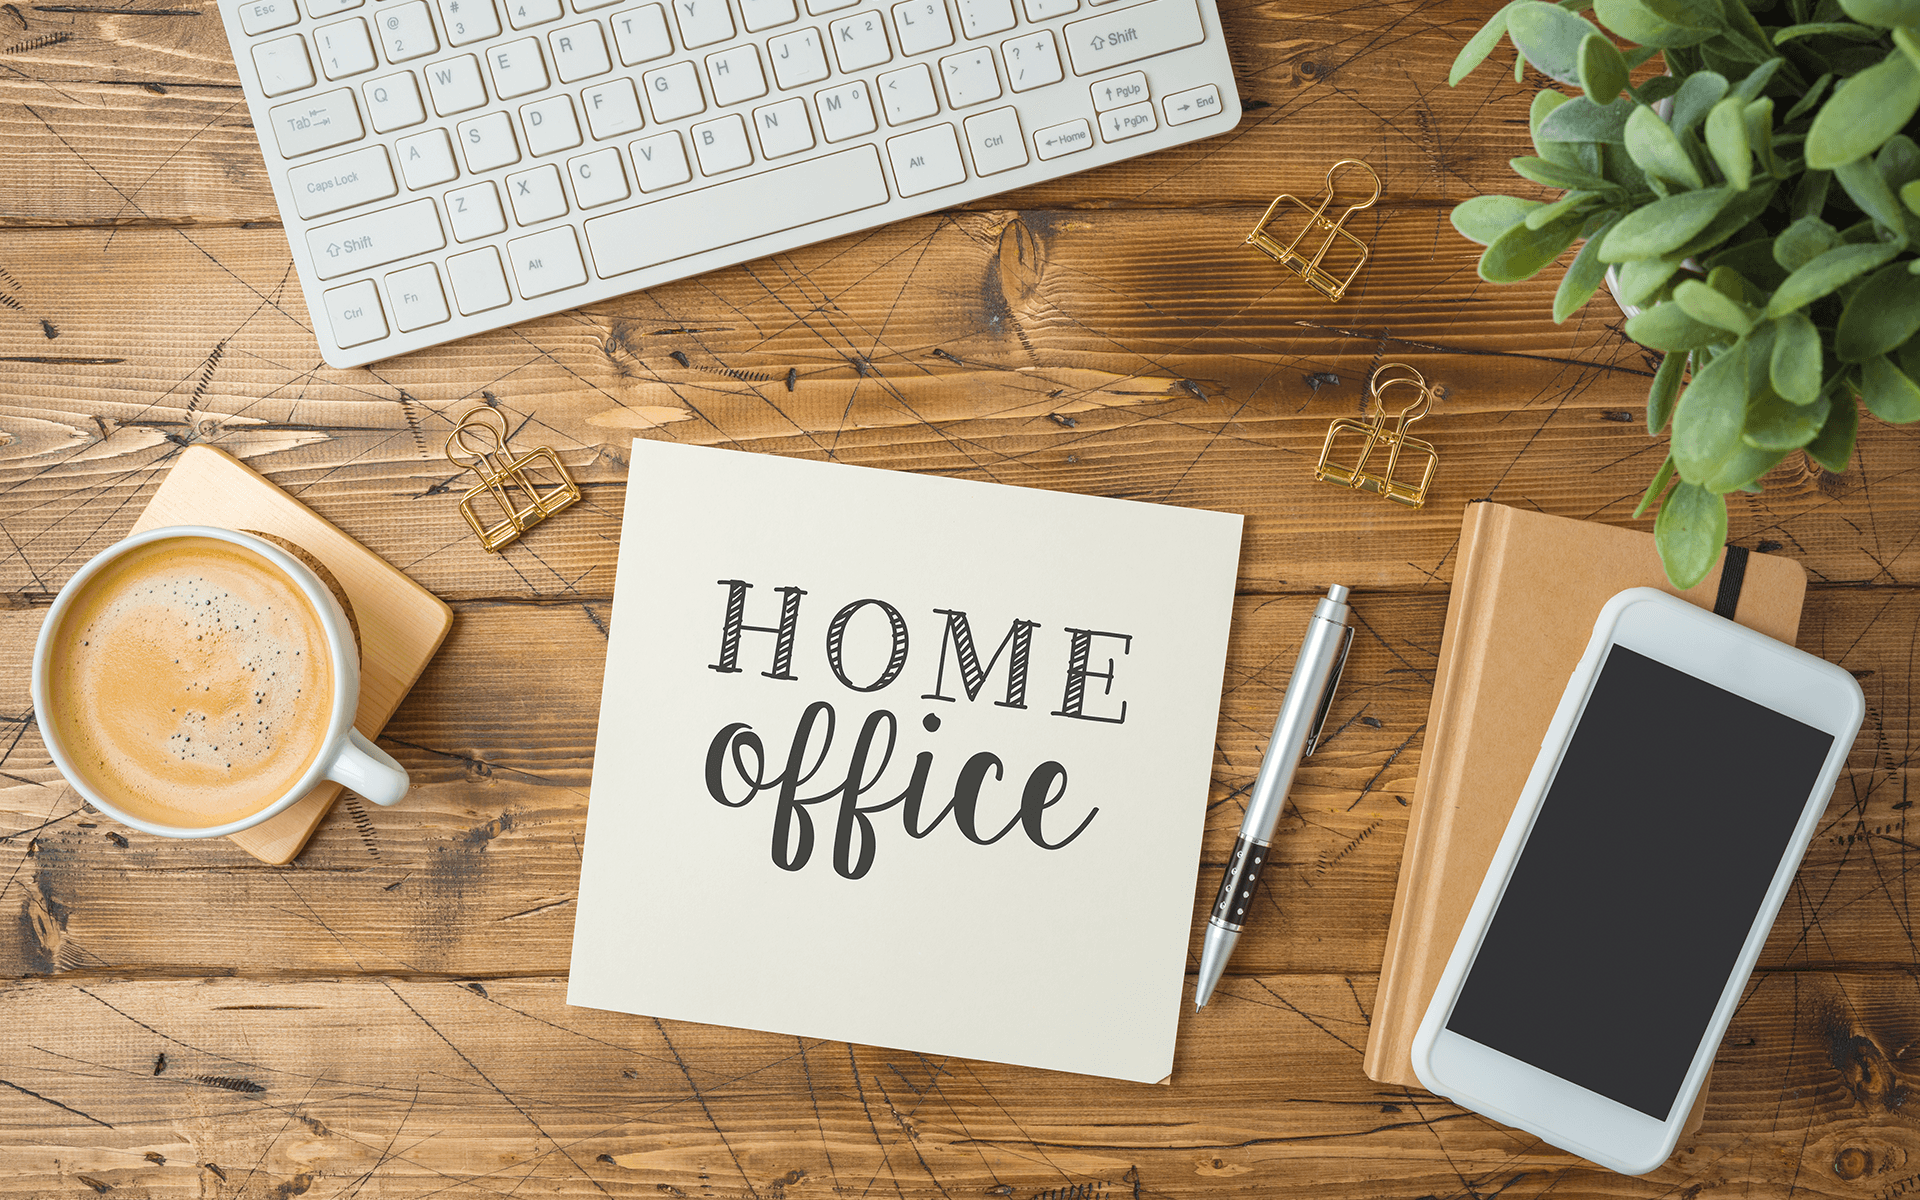 Home Office / Remote Access